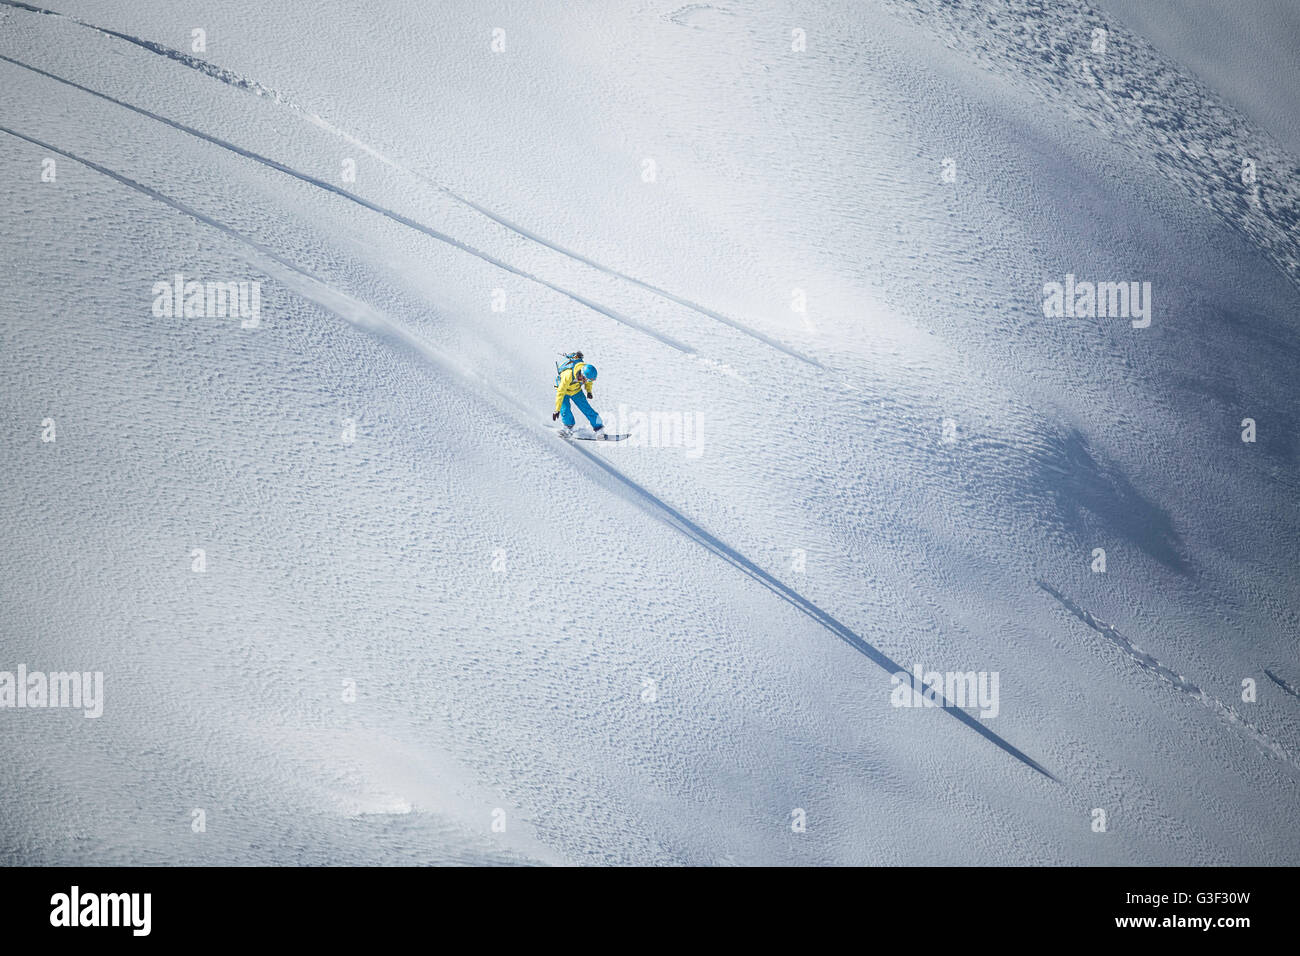 rapid downhill skiing with snowboard in the deep snow - Stock Image